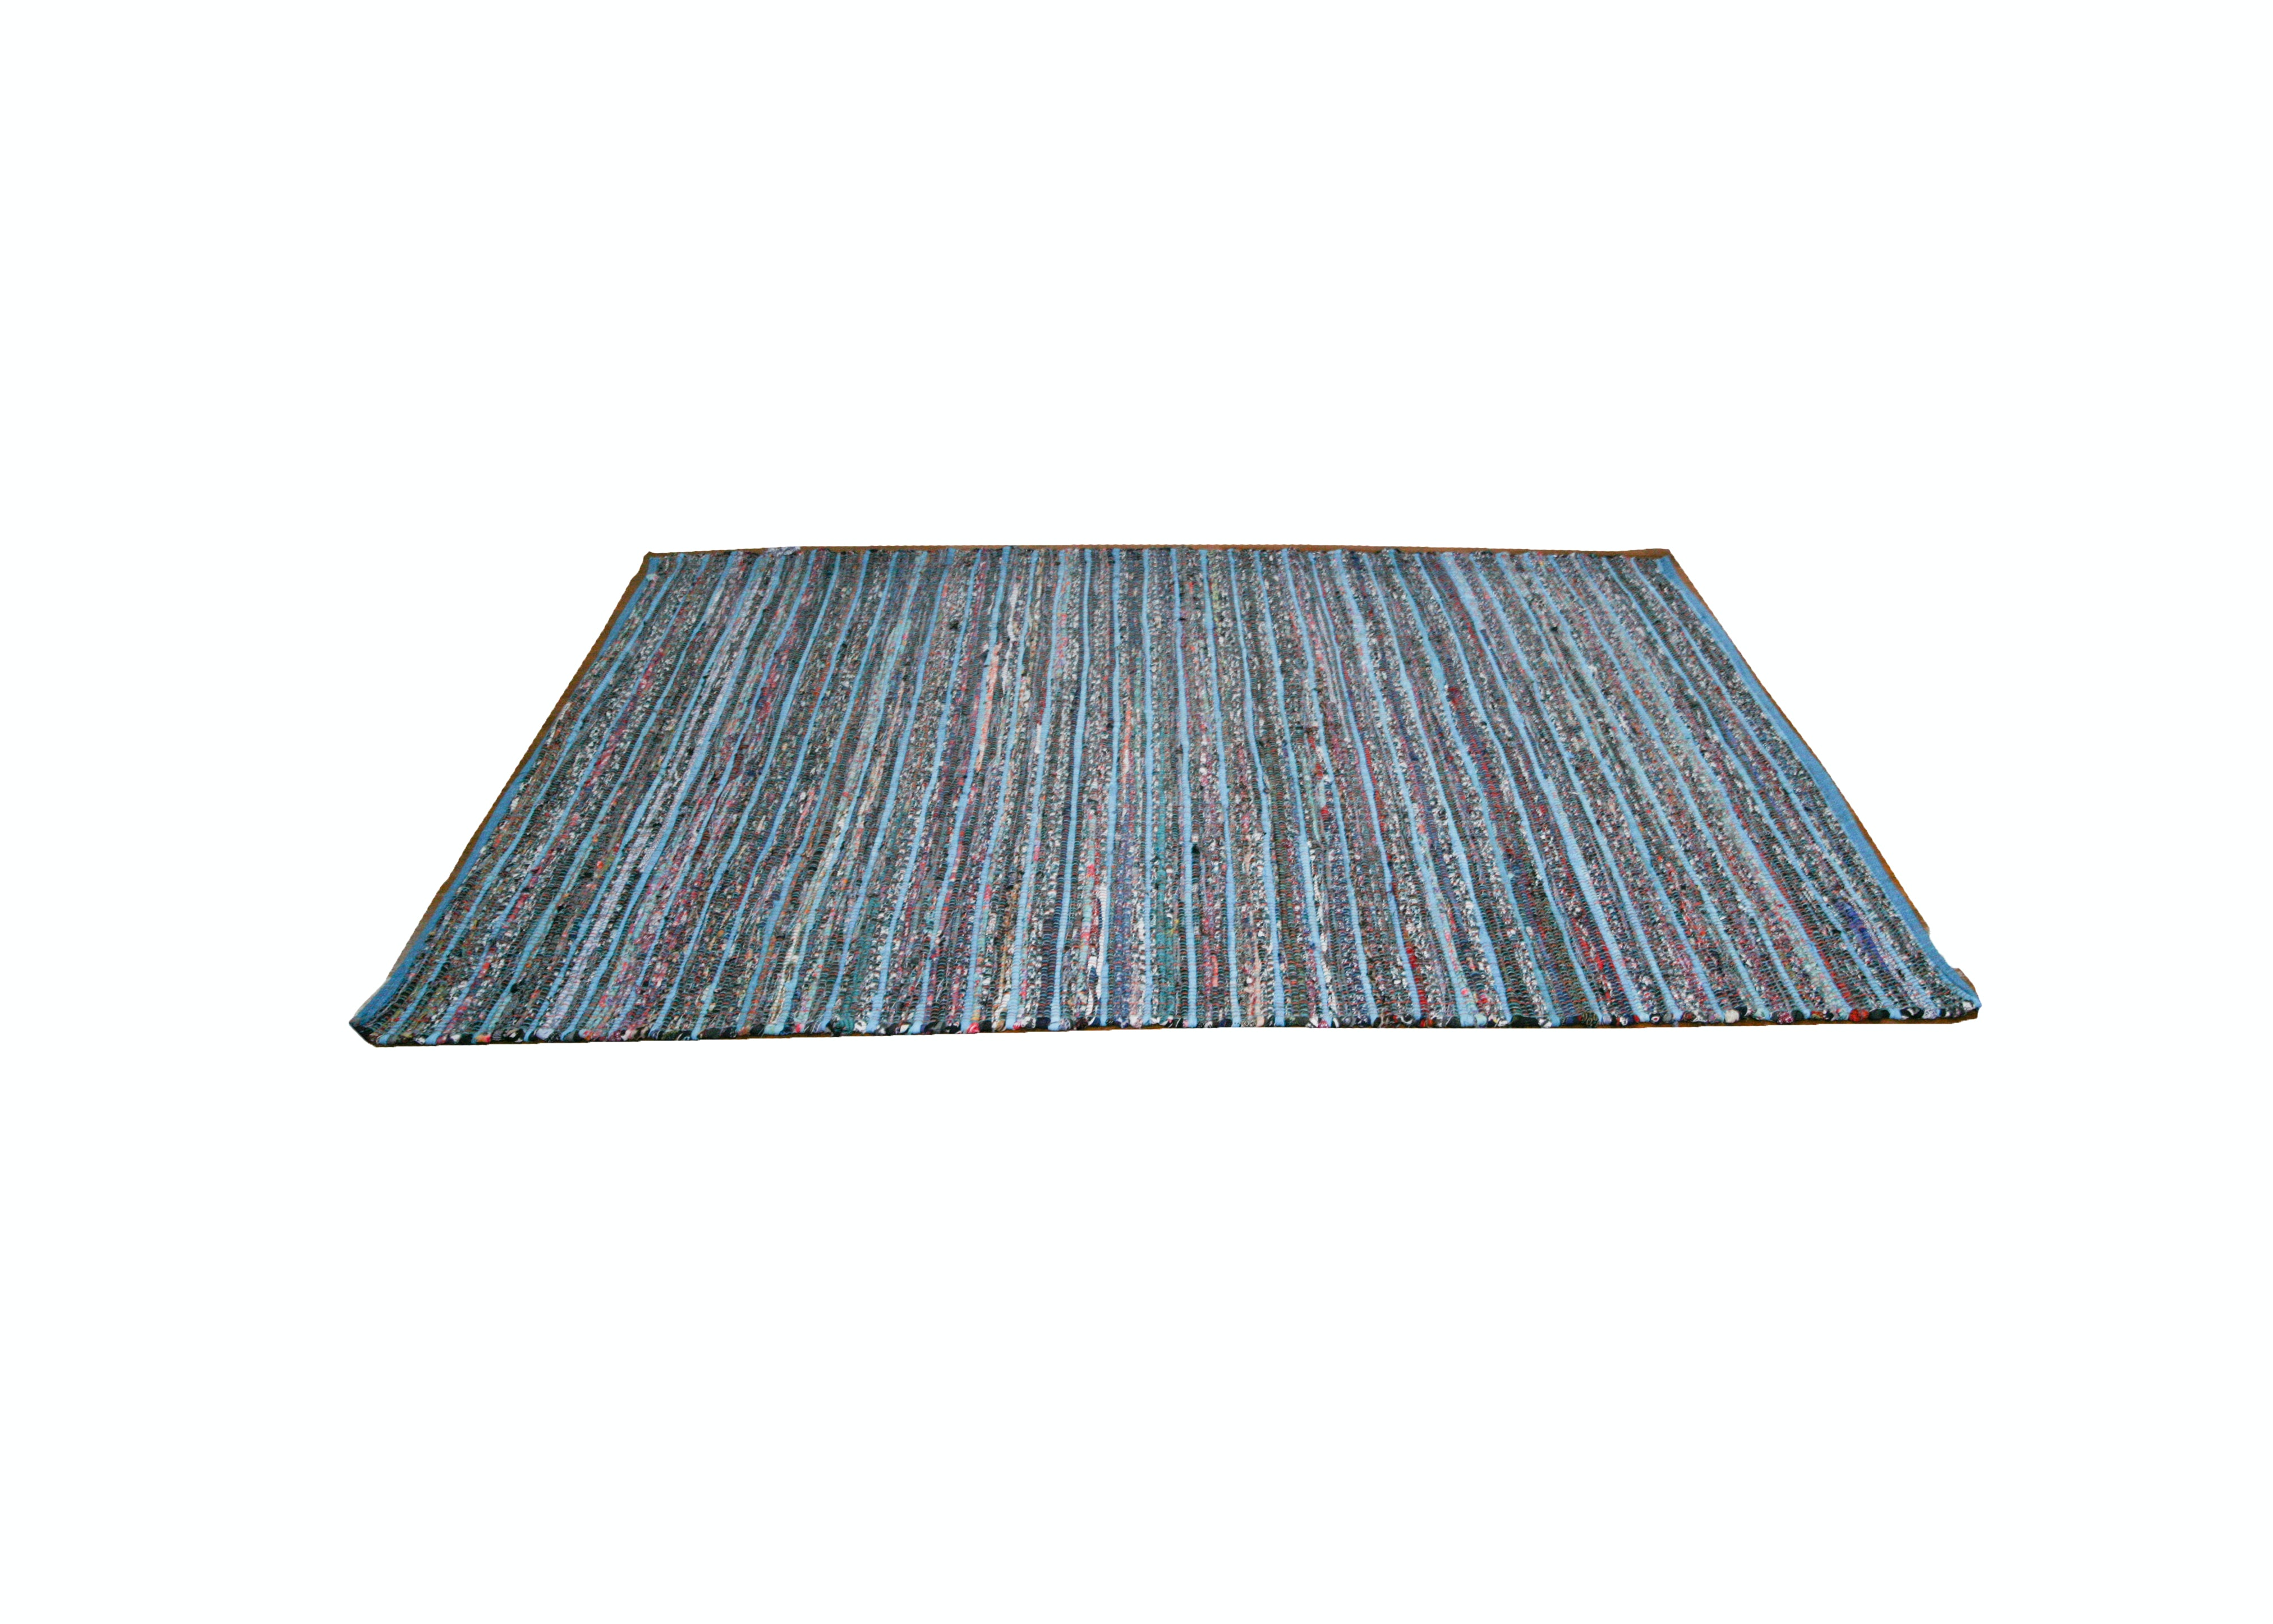 Woven Multicolor Flat Weave Rug